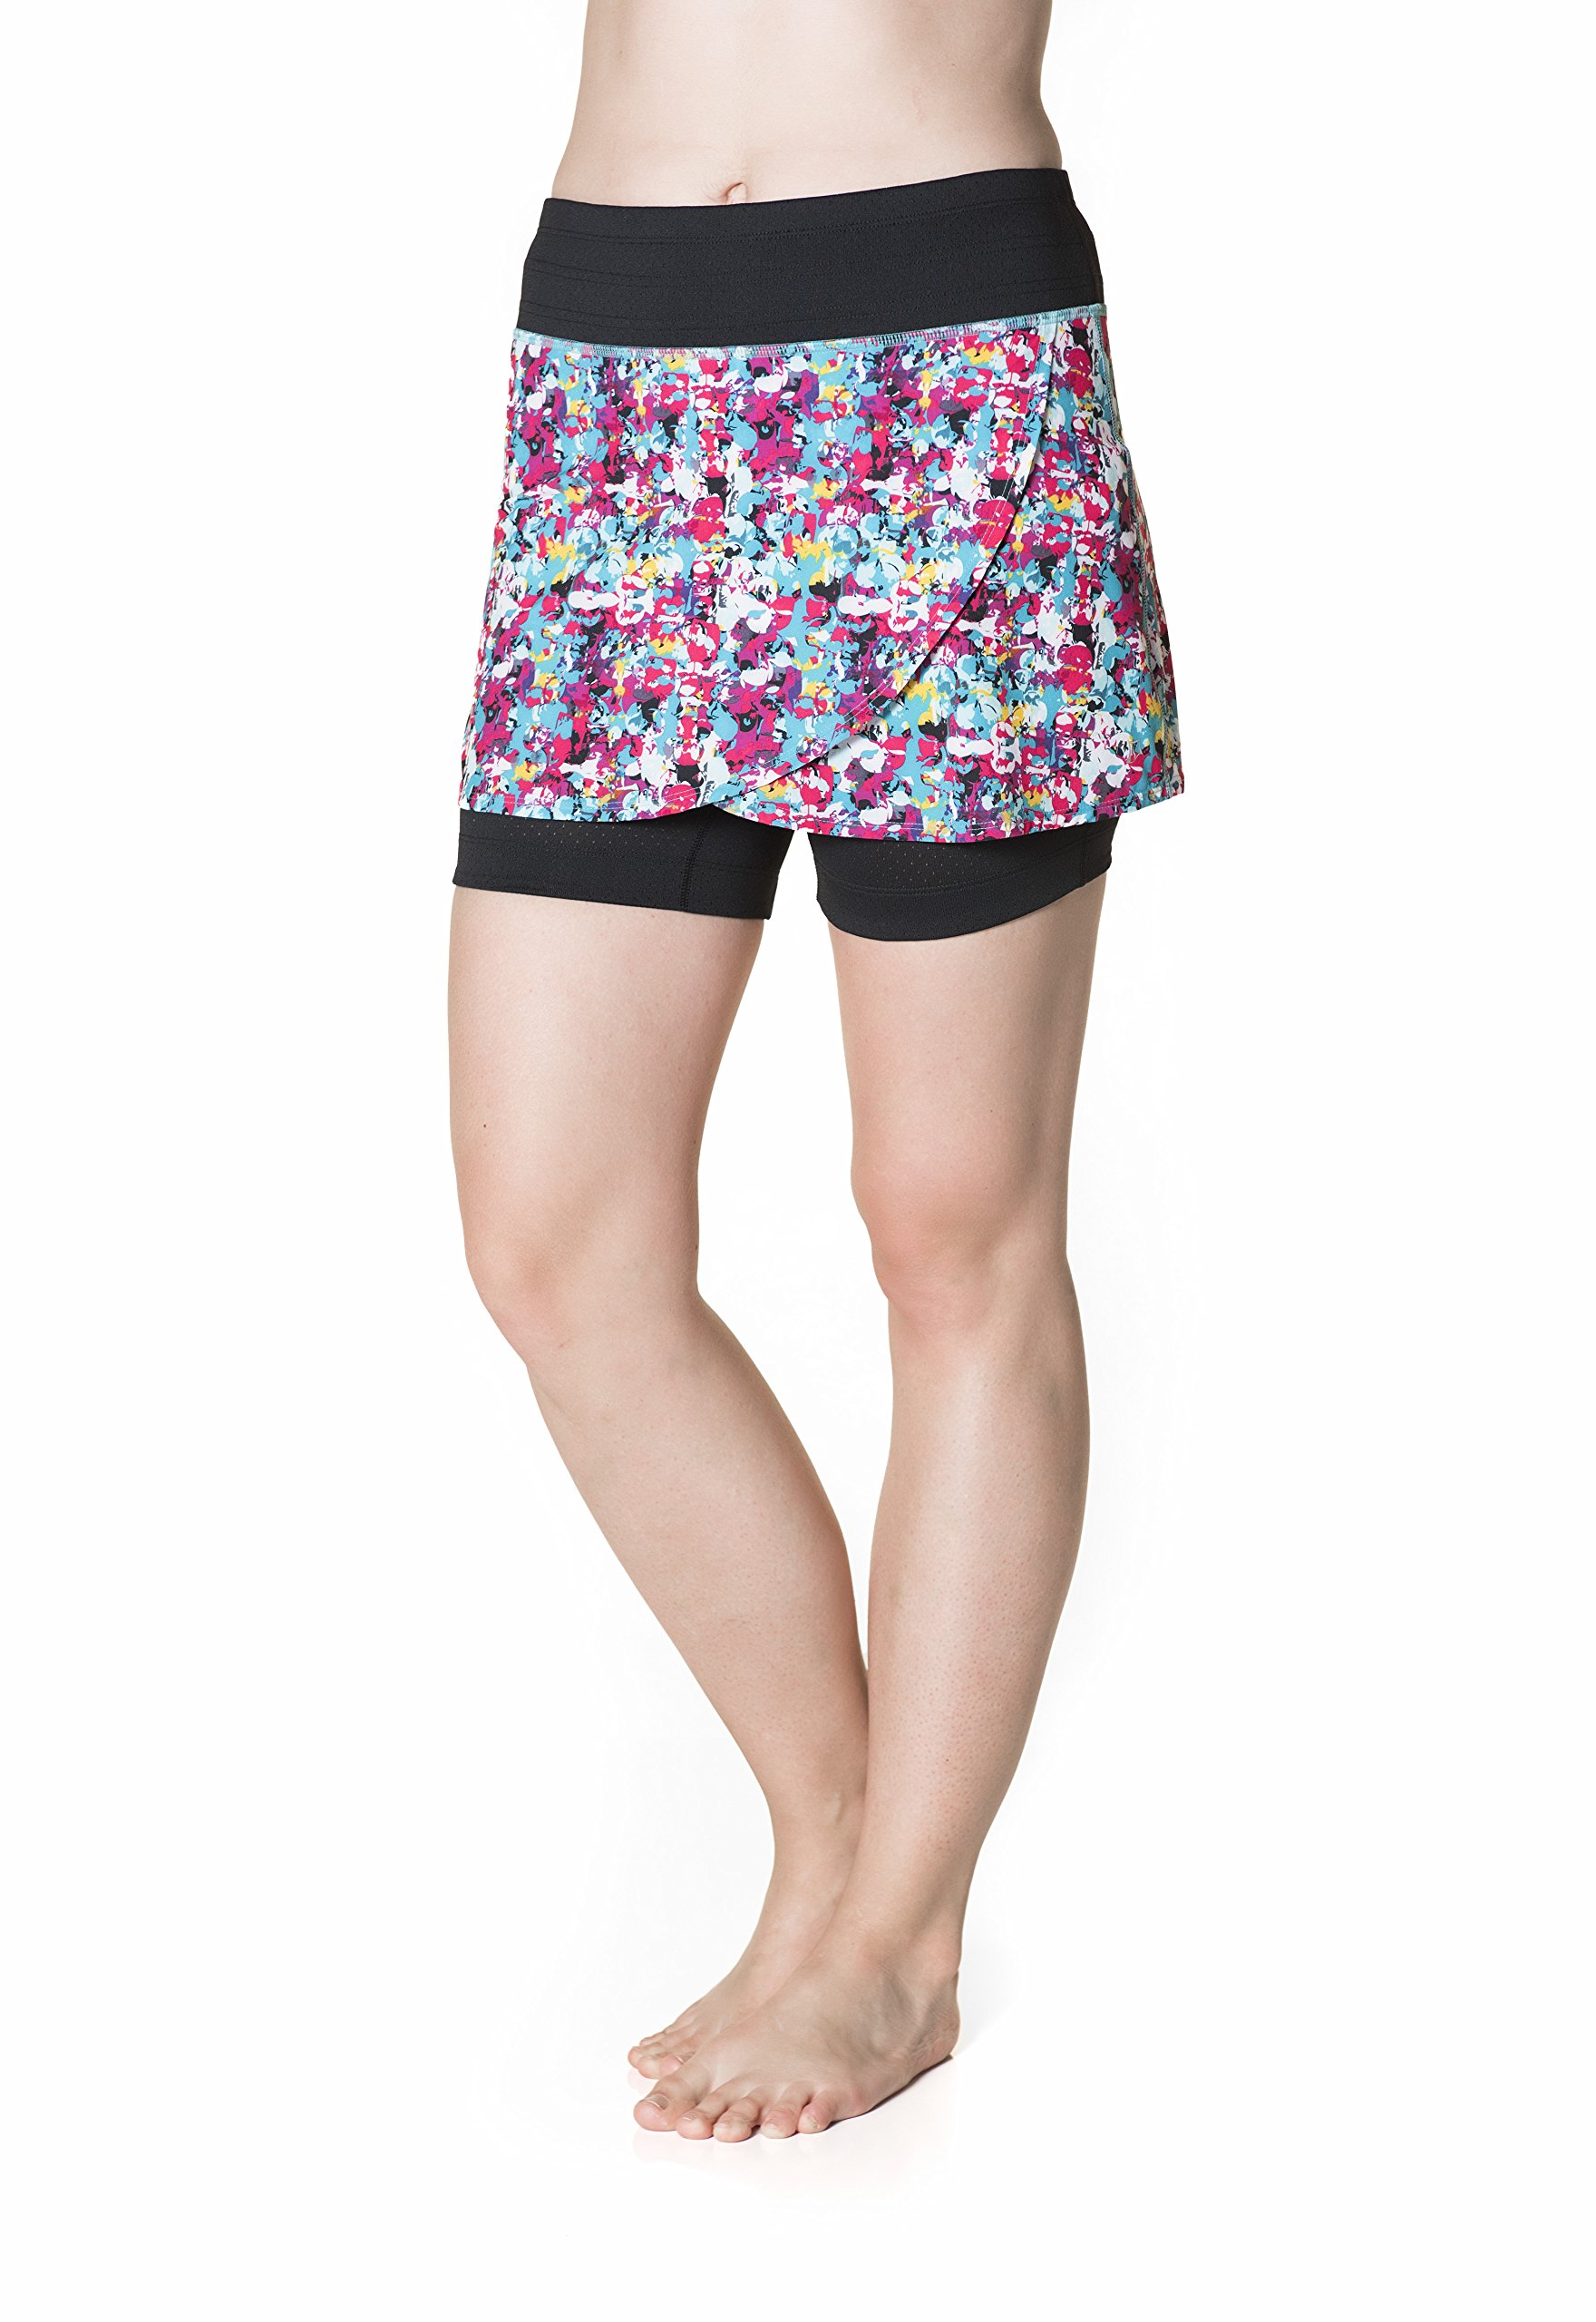 Skirt Sports Women's Hover Skirt, Holiday Print, X-Large by Skirt Sports